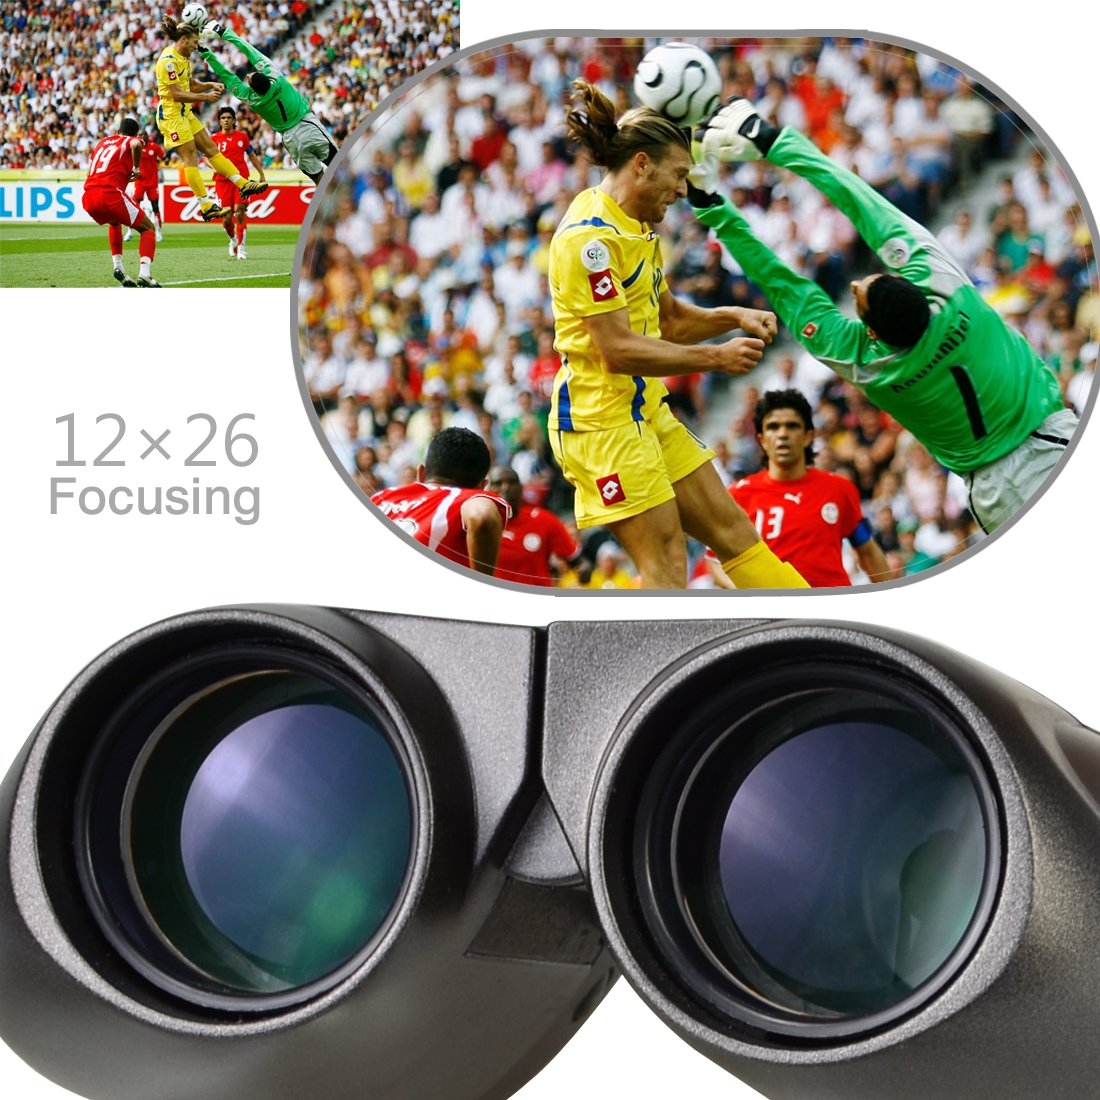 Onete 1226 Birding Compact Binoculars for Adult and Kid – High Power Folding Waterproof Binocular Easy Focus for Outdoor Hunting, Football Gaming, Travelling, Sightseeing